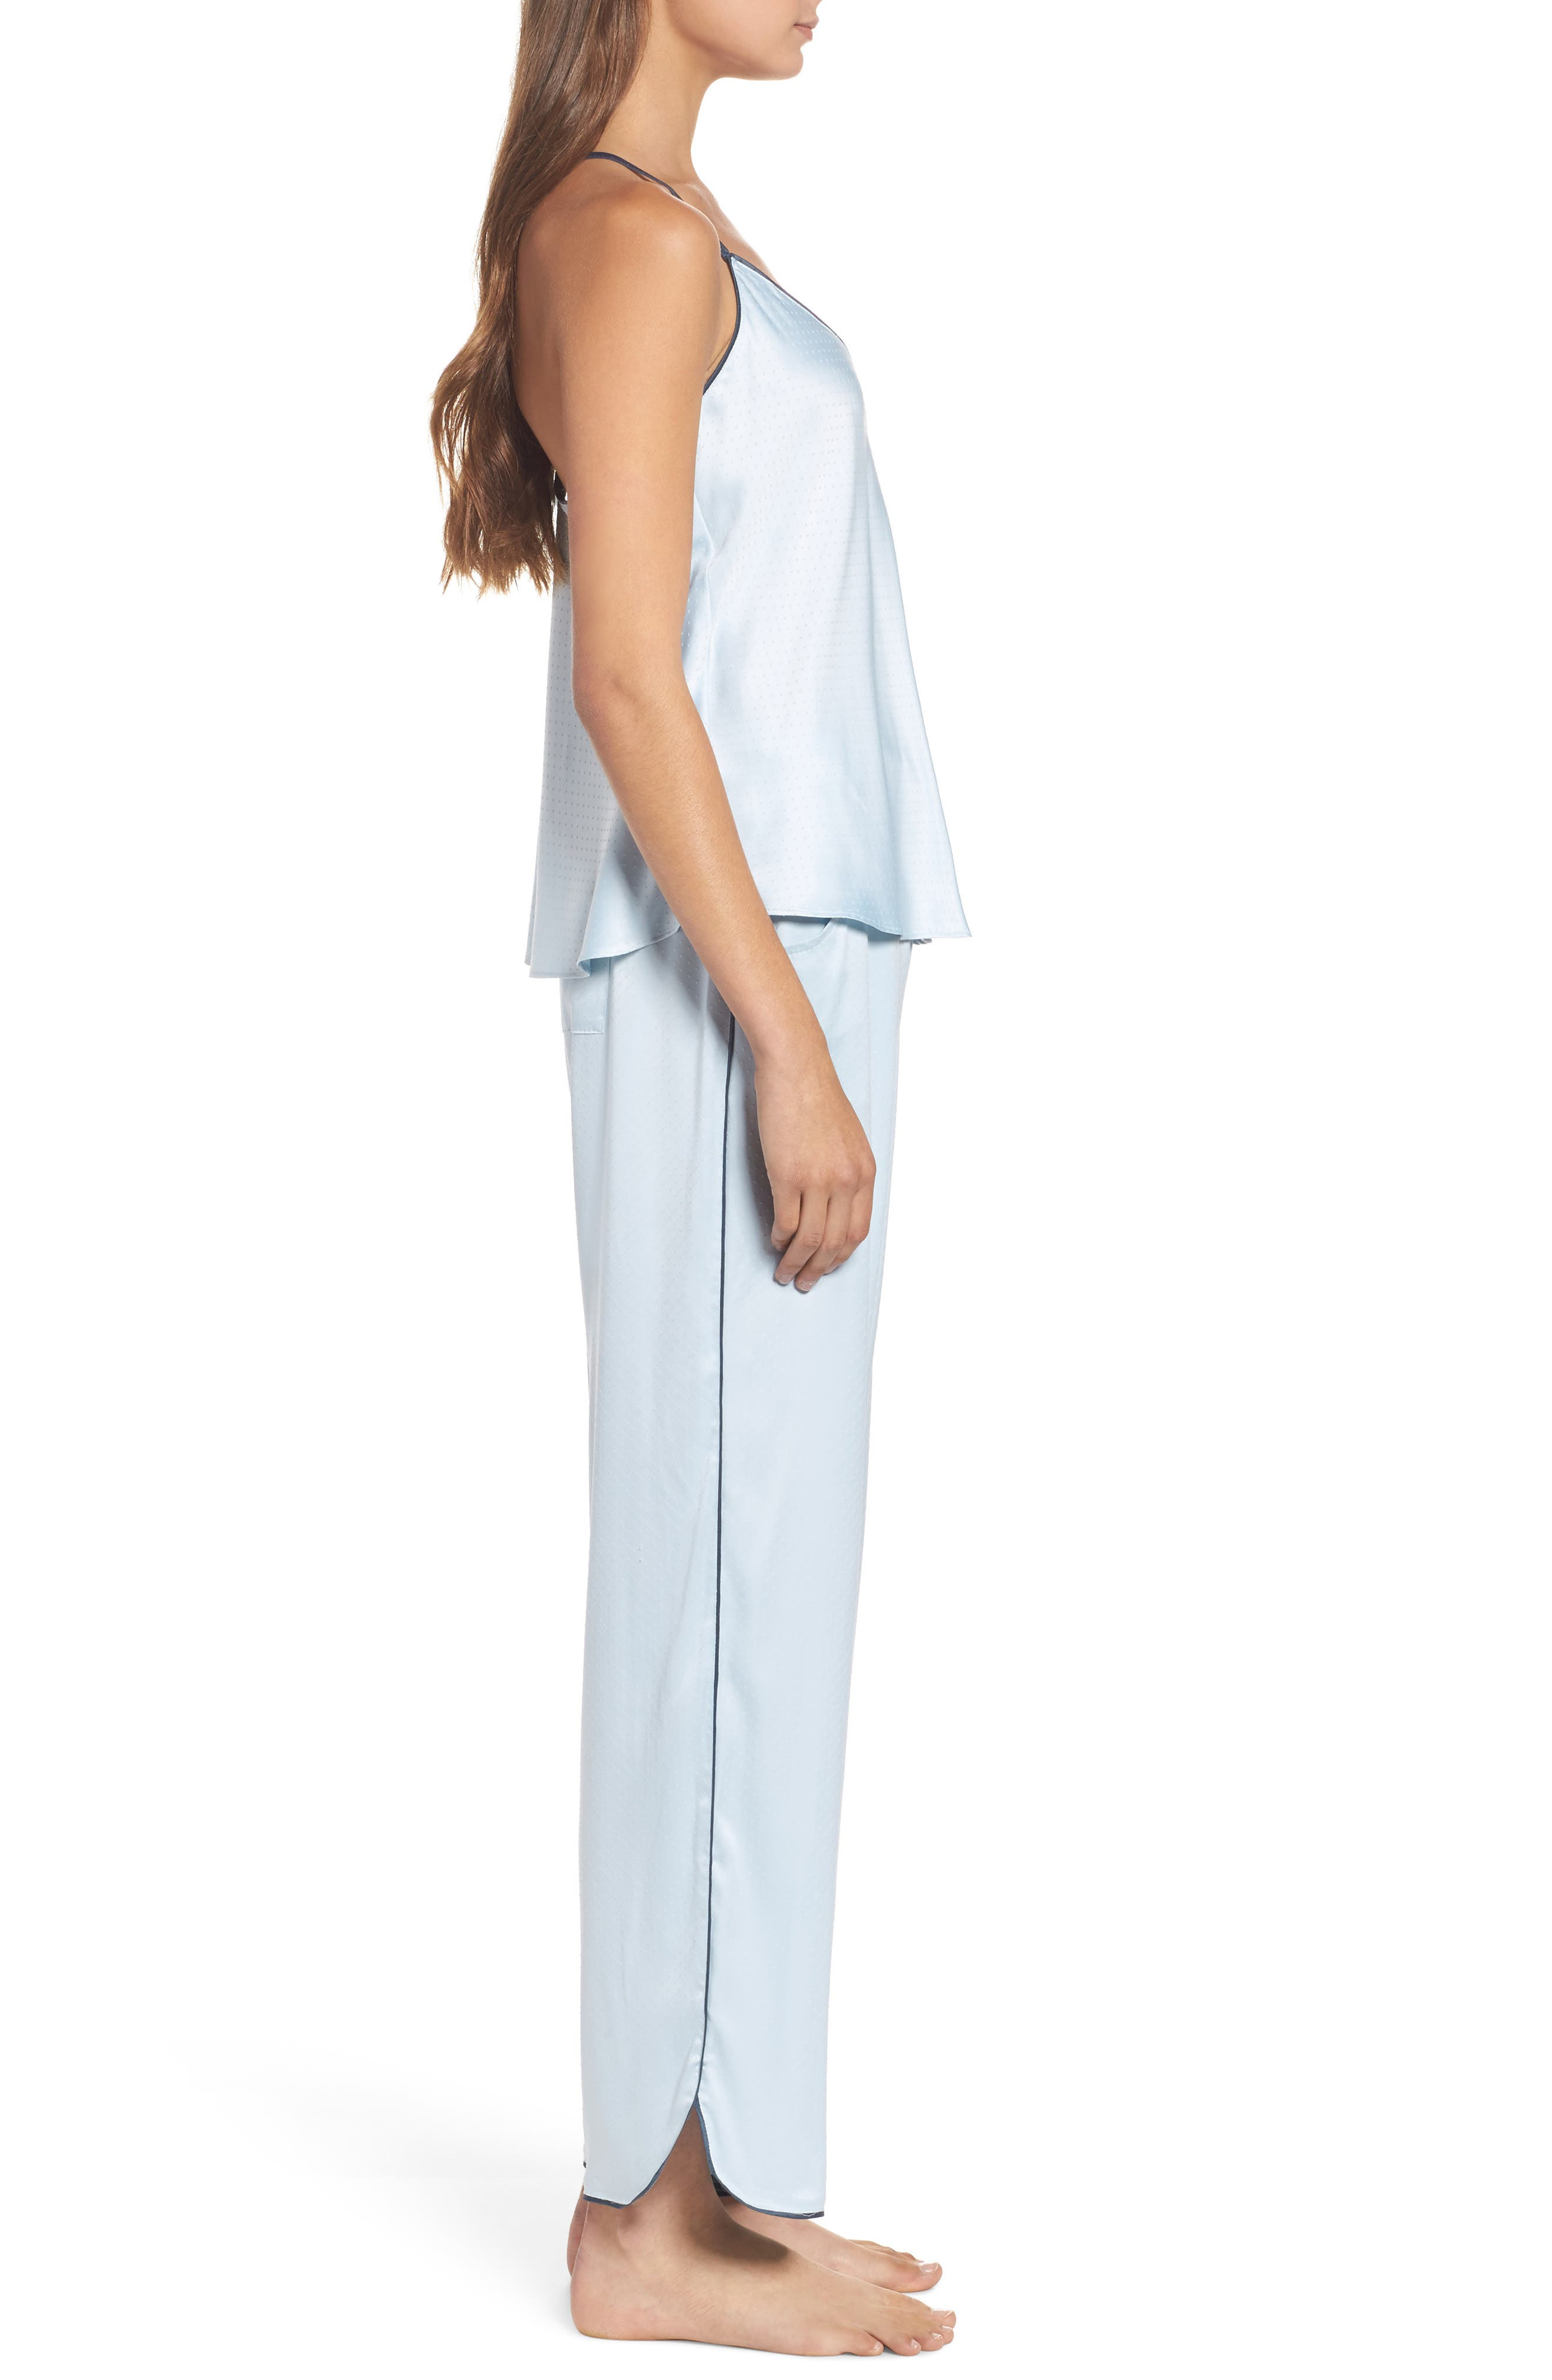 Chelsea27 Late Nights Satin Lounge Pants,                             Alternate thumbnail 6, color,                             Blue Drift